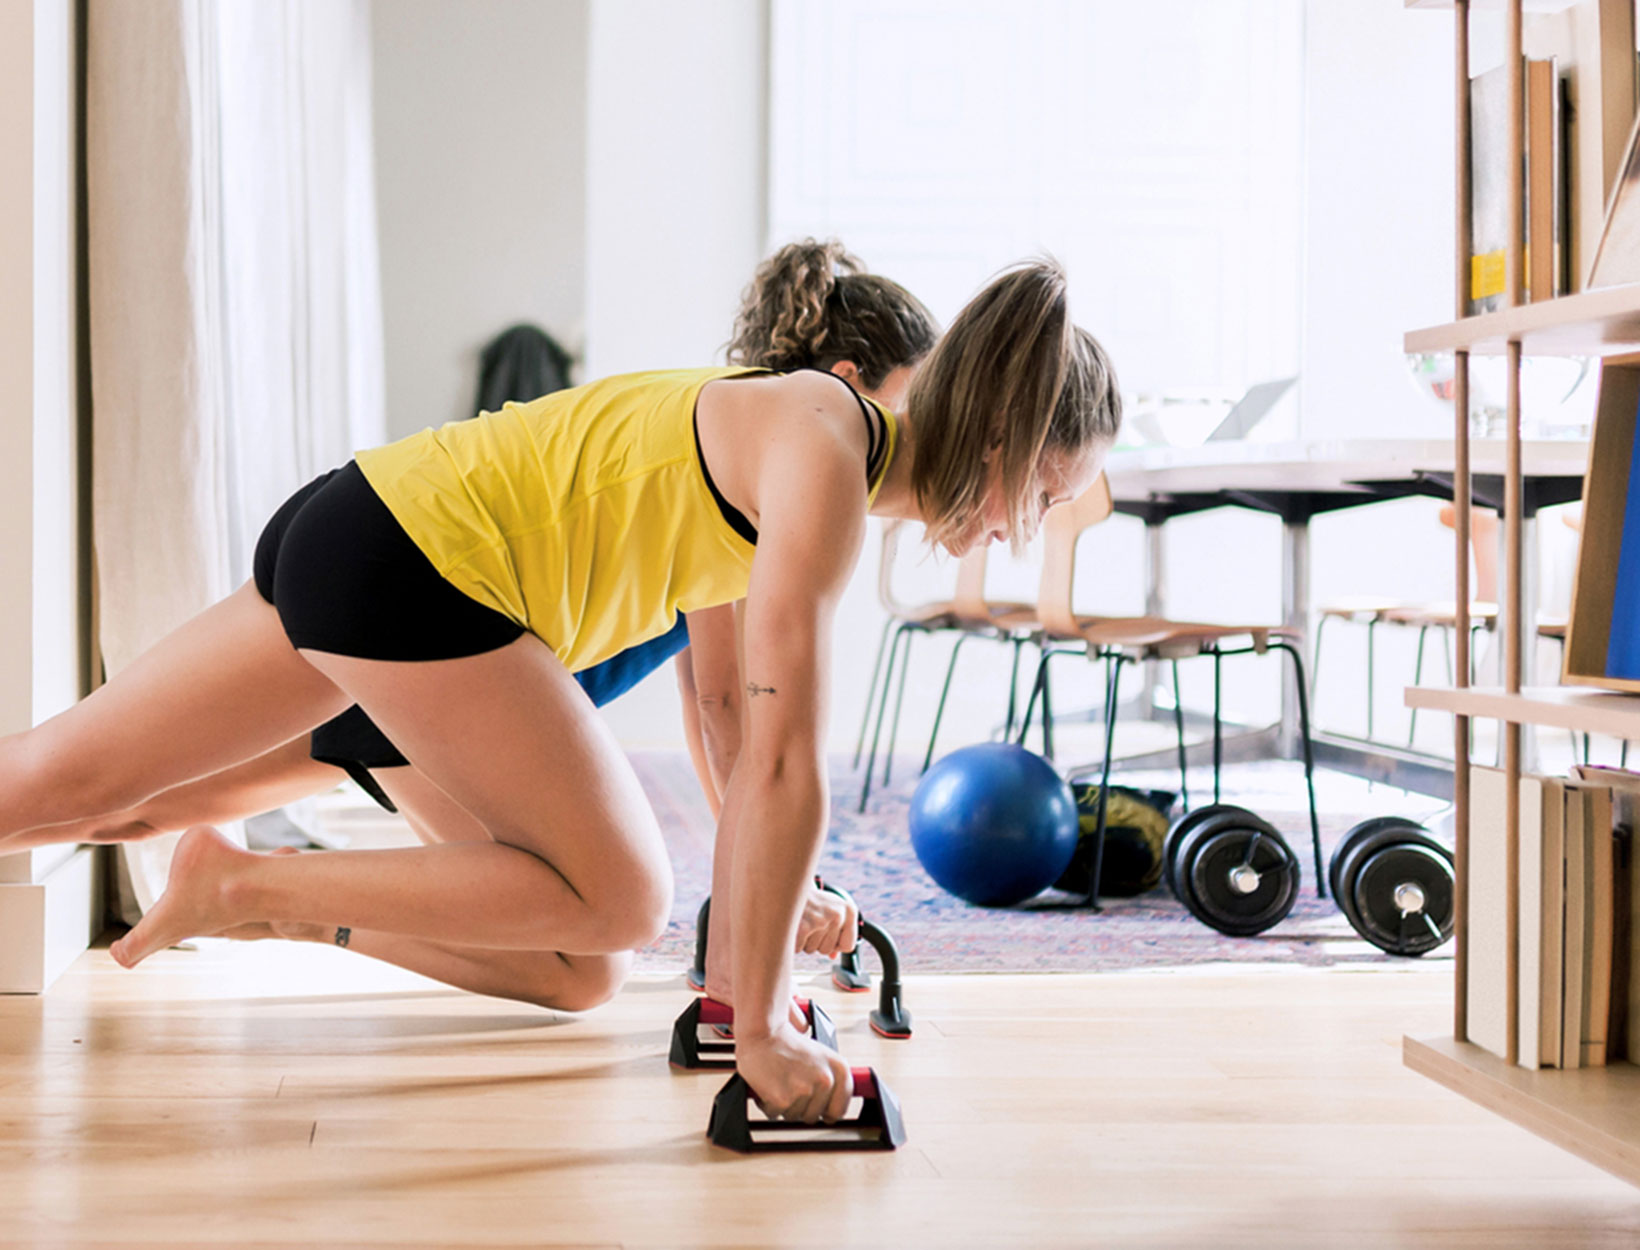 women working out at home